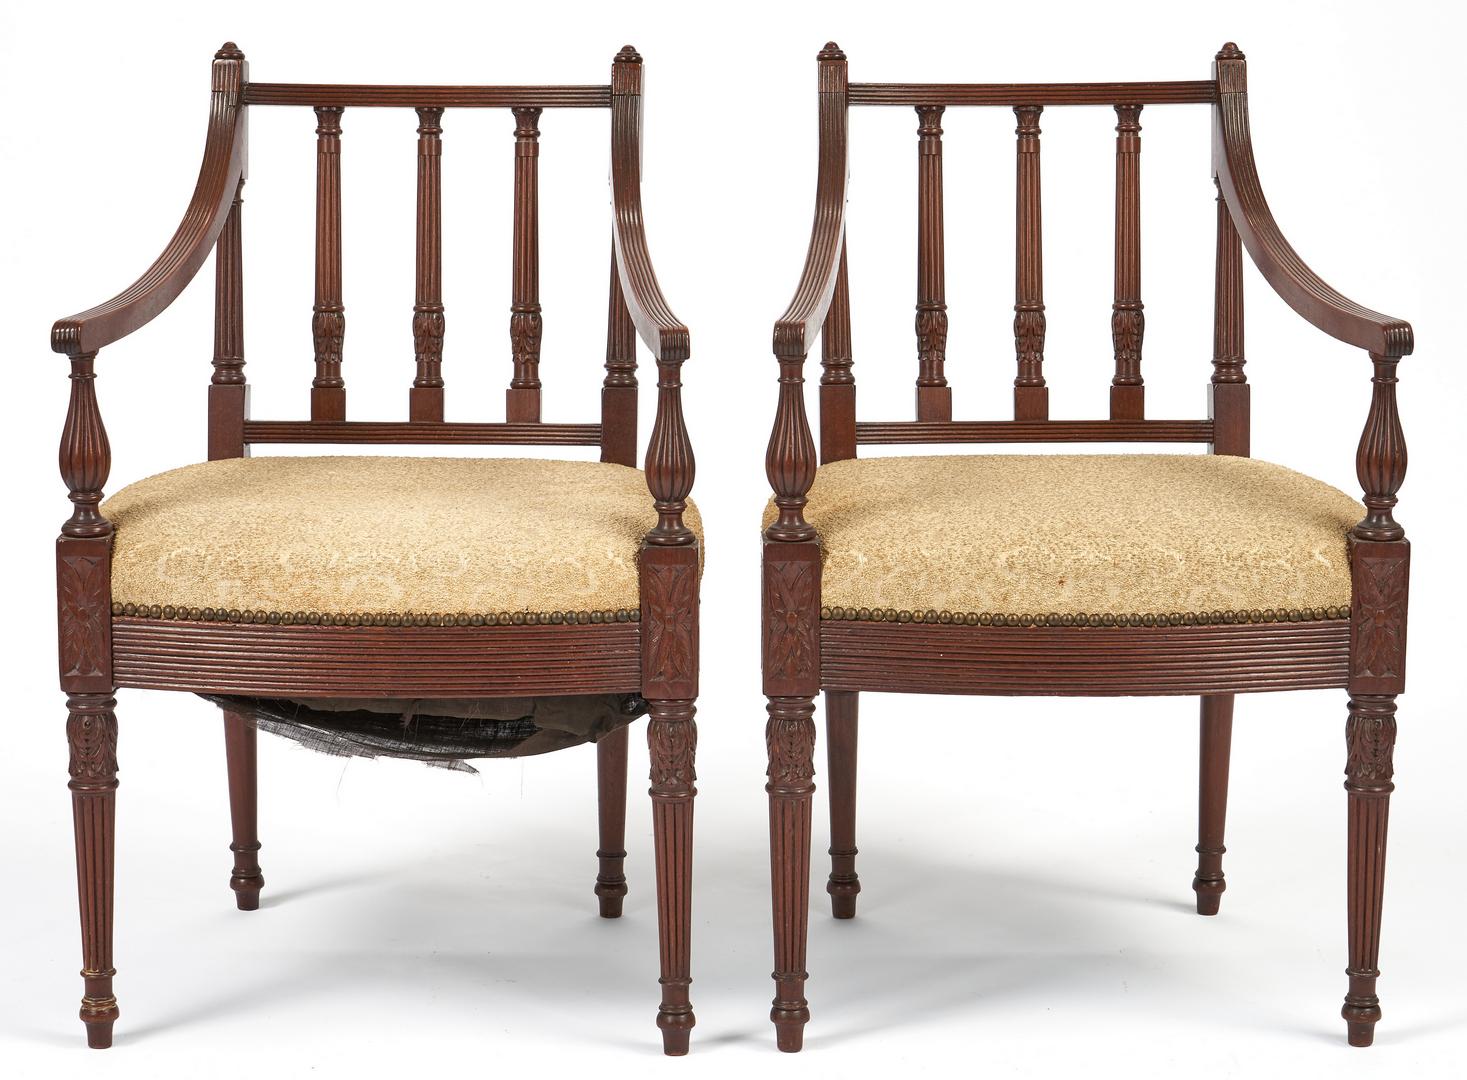 Lot 341: Queen Anne Side Chair & 2 Sheraton Chairs, 3 total